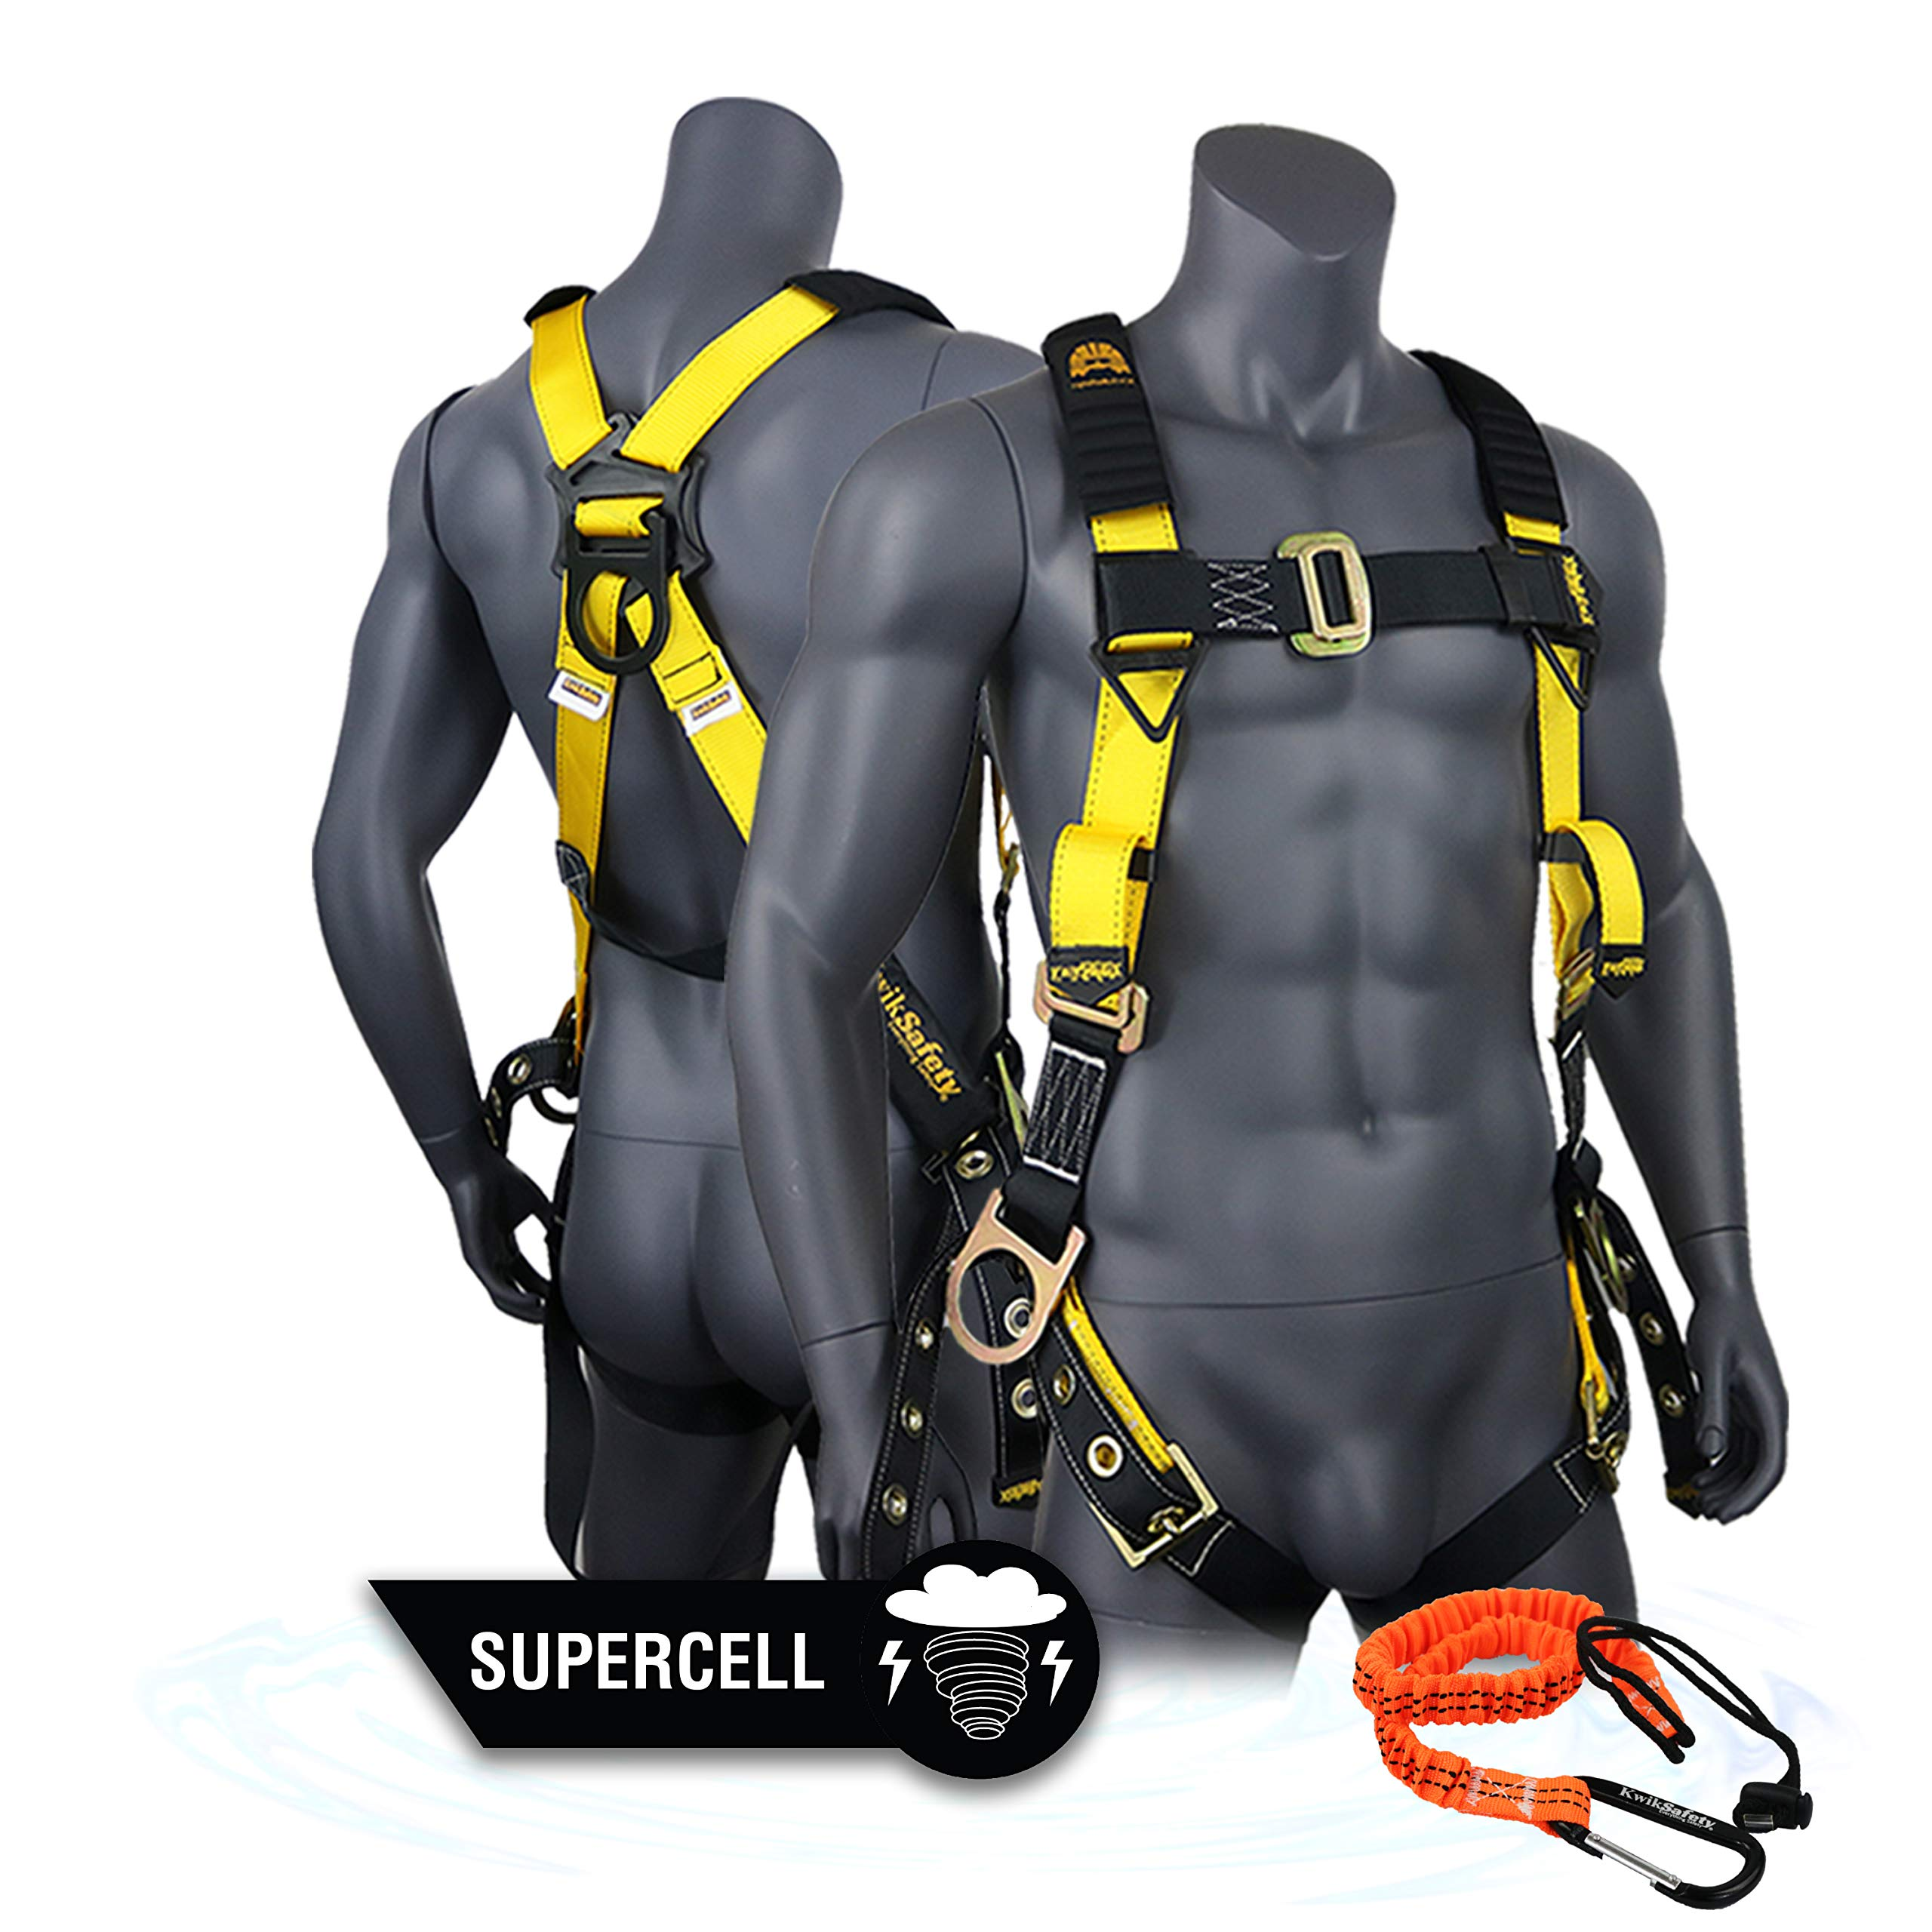 KwikSafety (Charlotte, NC) SUPERCELL Safety Harness | ANSI OSHA Full Body Personal Fall Protection | Dorsal Ring Side D-Rings Grommet Tongue Buckle Straps Tool Lanyard Construction Tower Roofing by KwikSafety